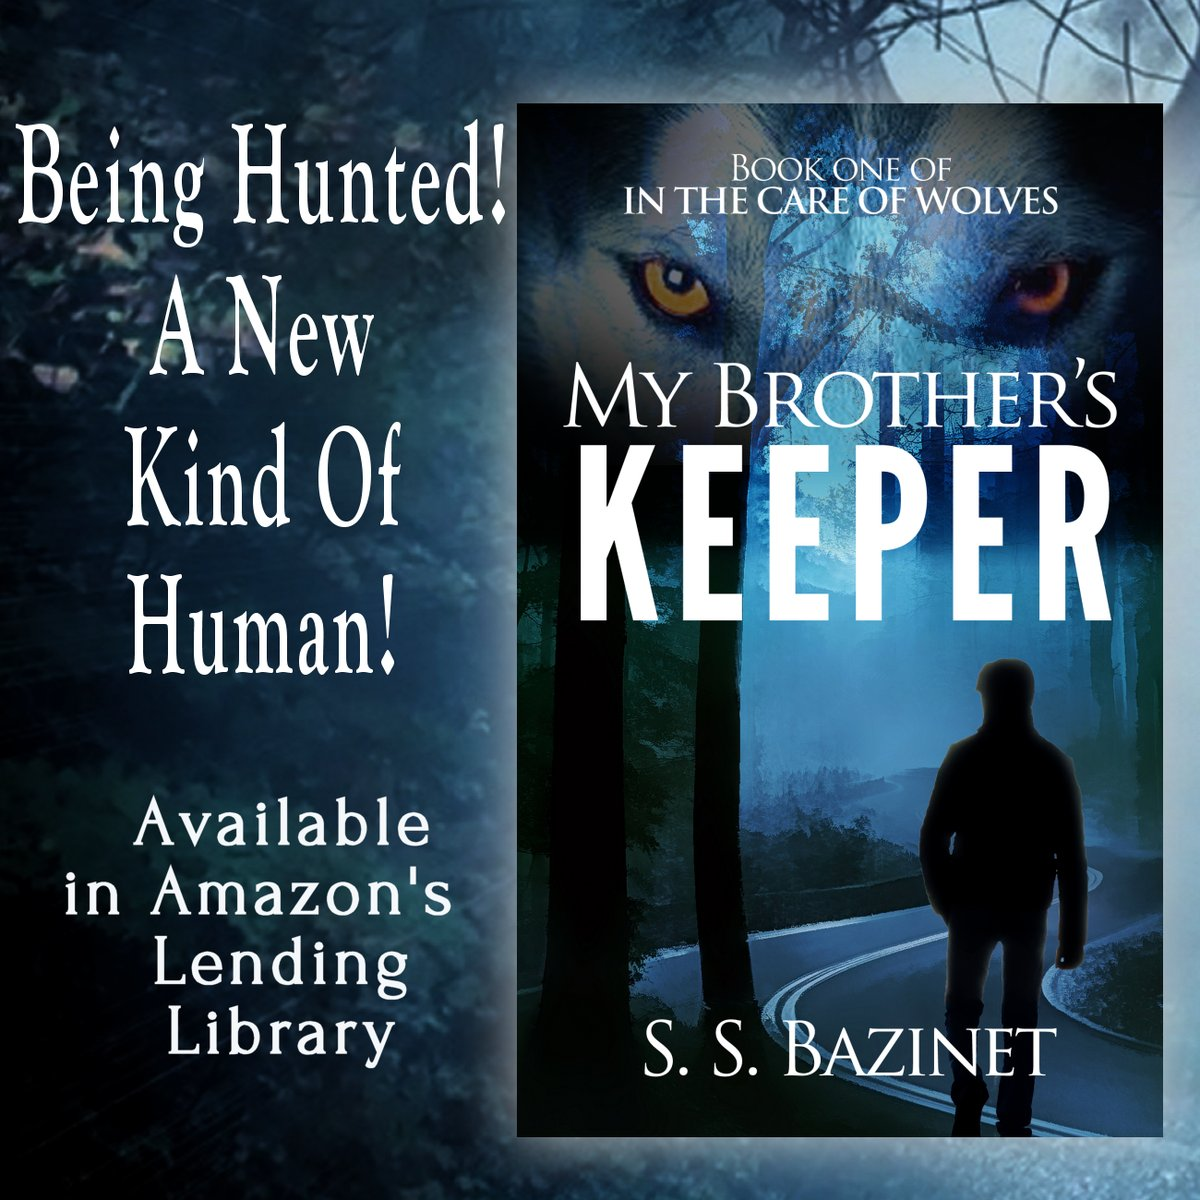 http:// amazon.com/dp/B008R8ZFPM  &nbsp;    Being hunted to extinction! A new kind of human!  MY BROTHER&#39;S KEEPER! @SSBazinet  #Thriller #Werewolves #KU<br>http://pic.twitter.com/WF6COdDGj3